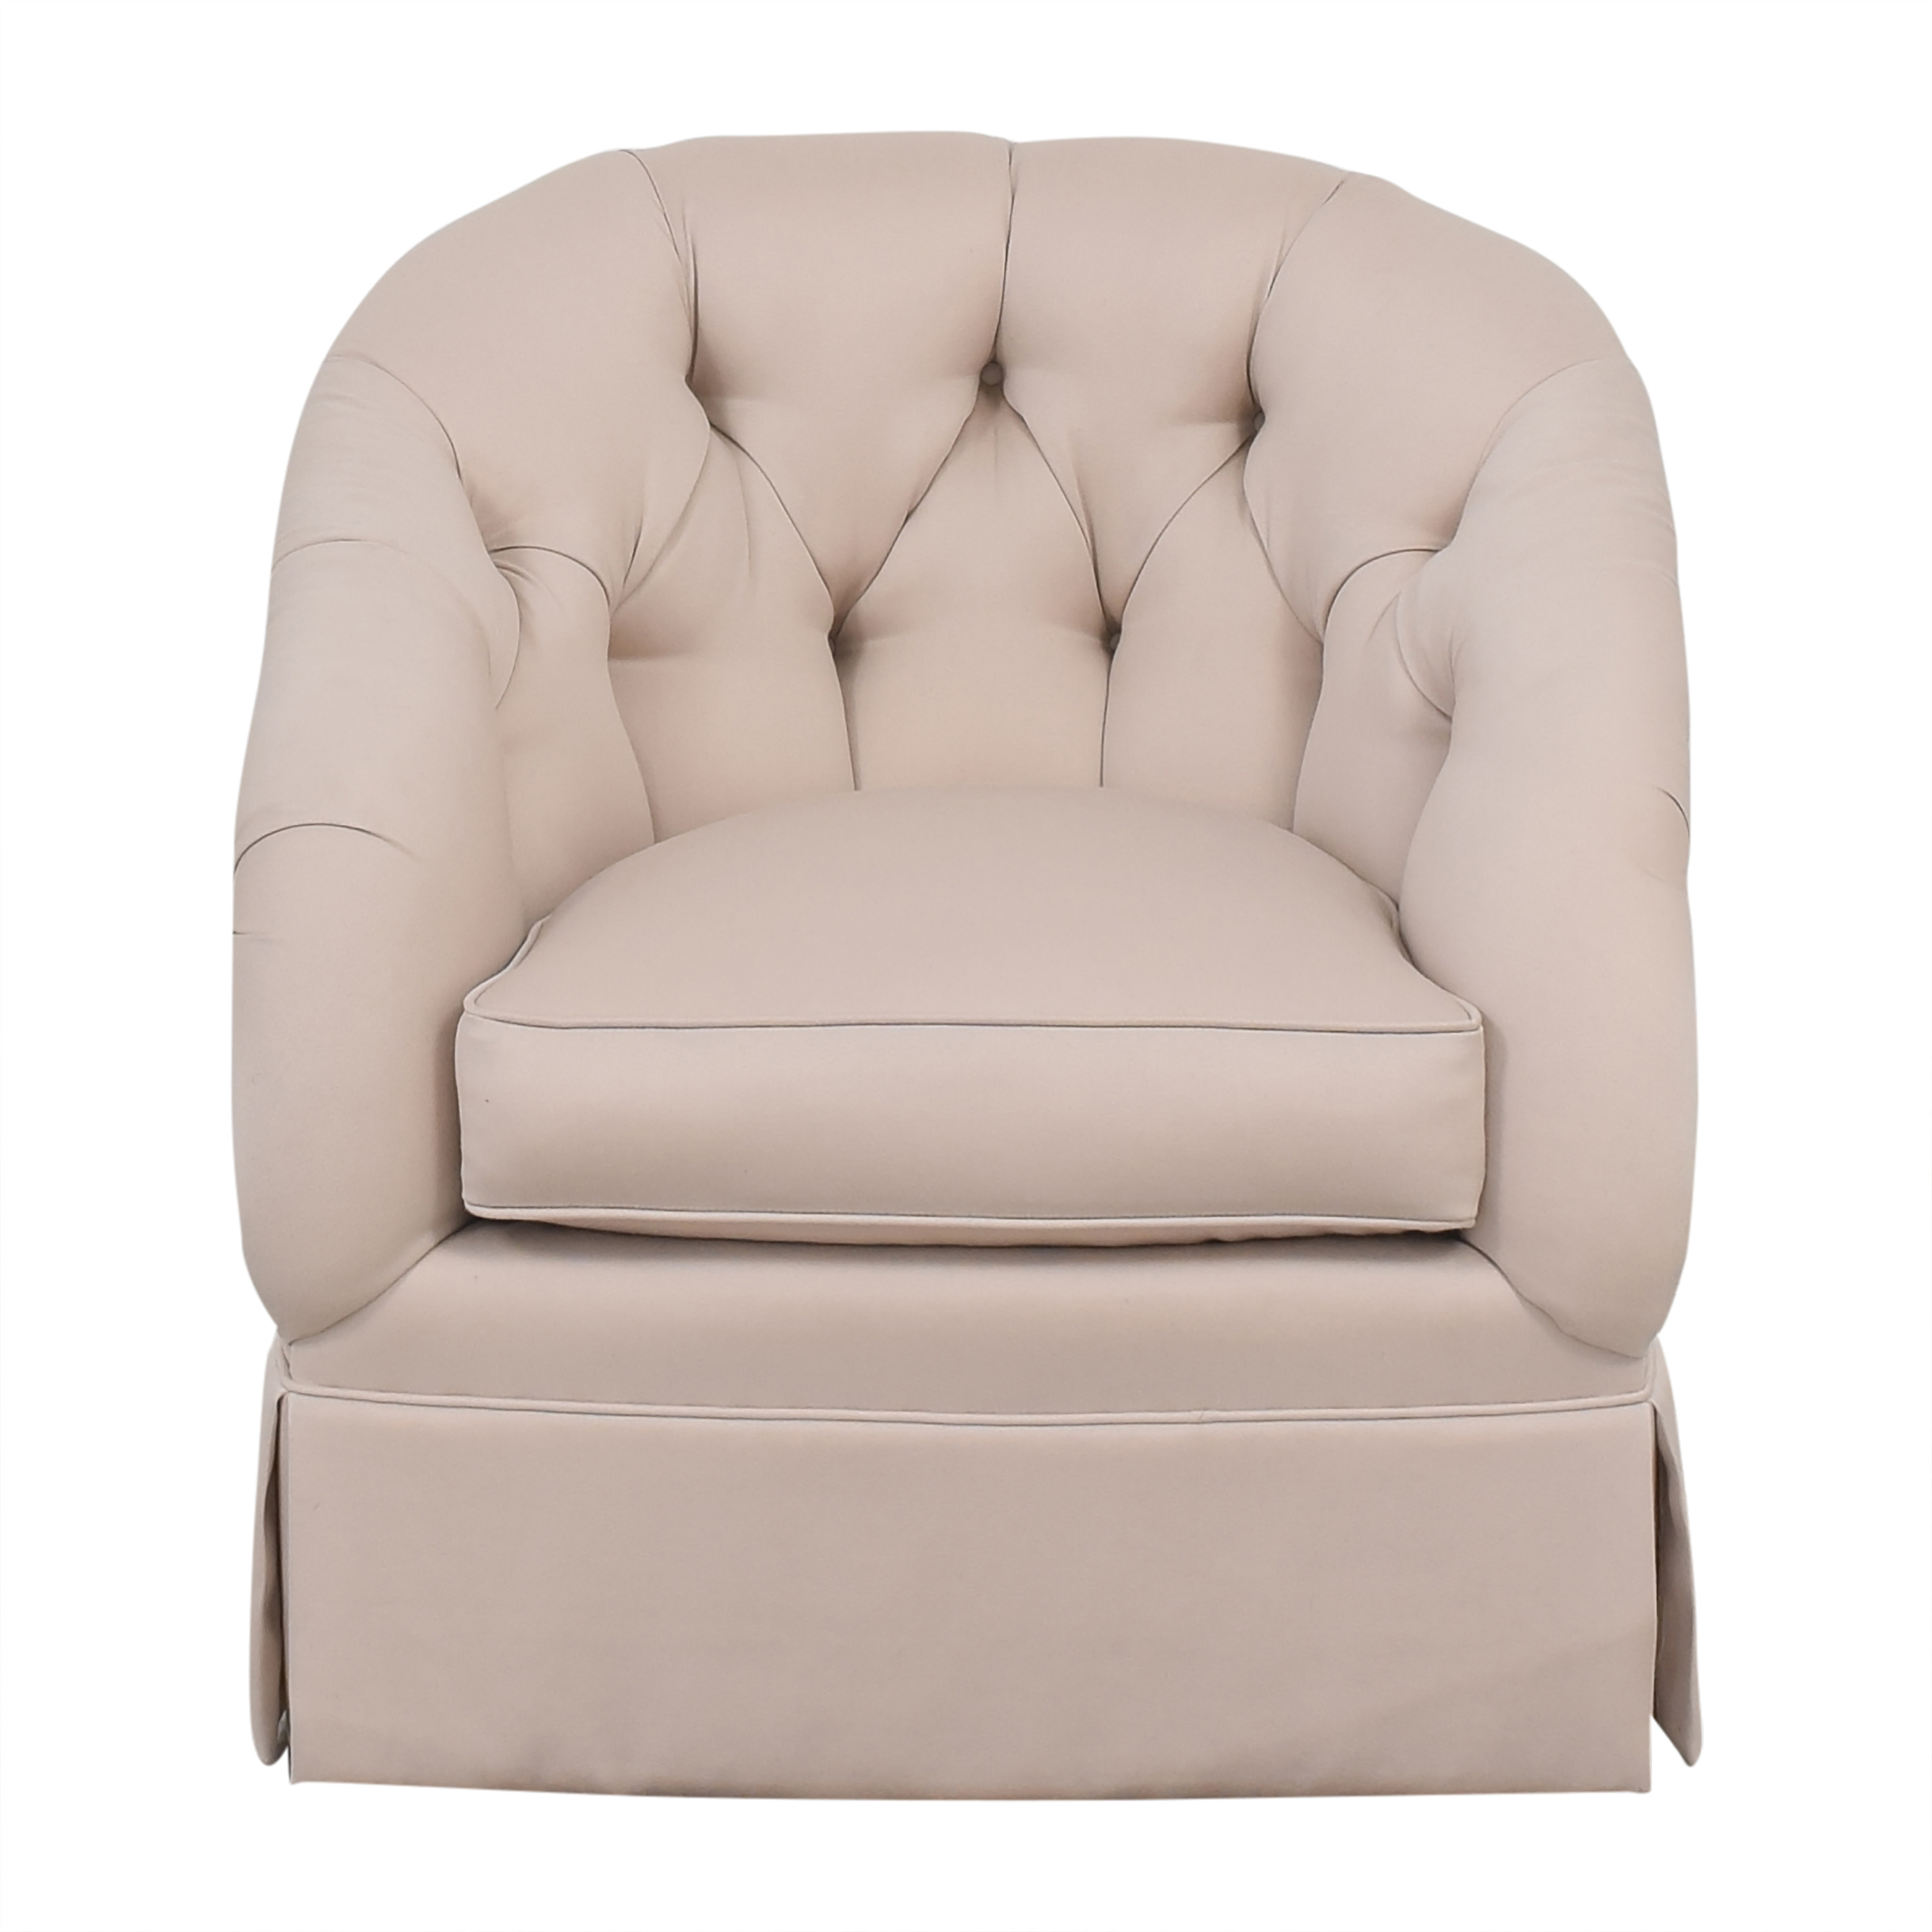 Tufted Swivel Chair Chairs